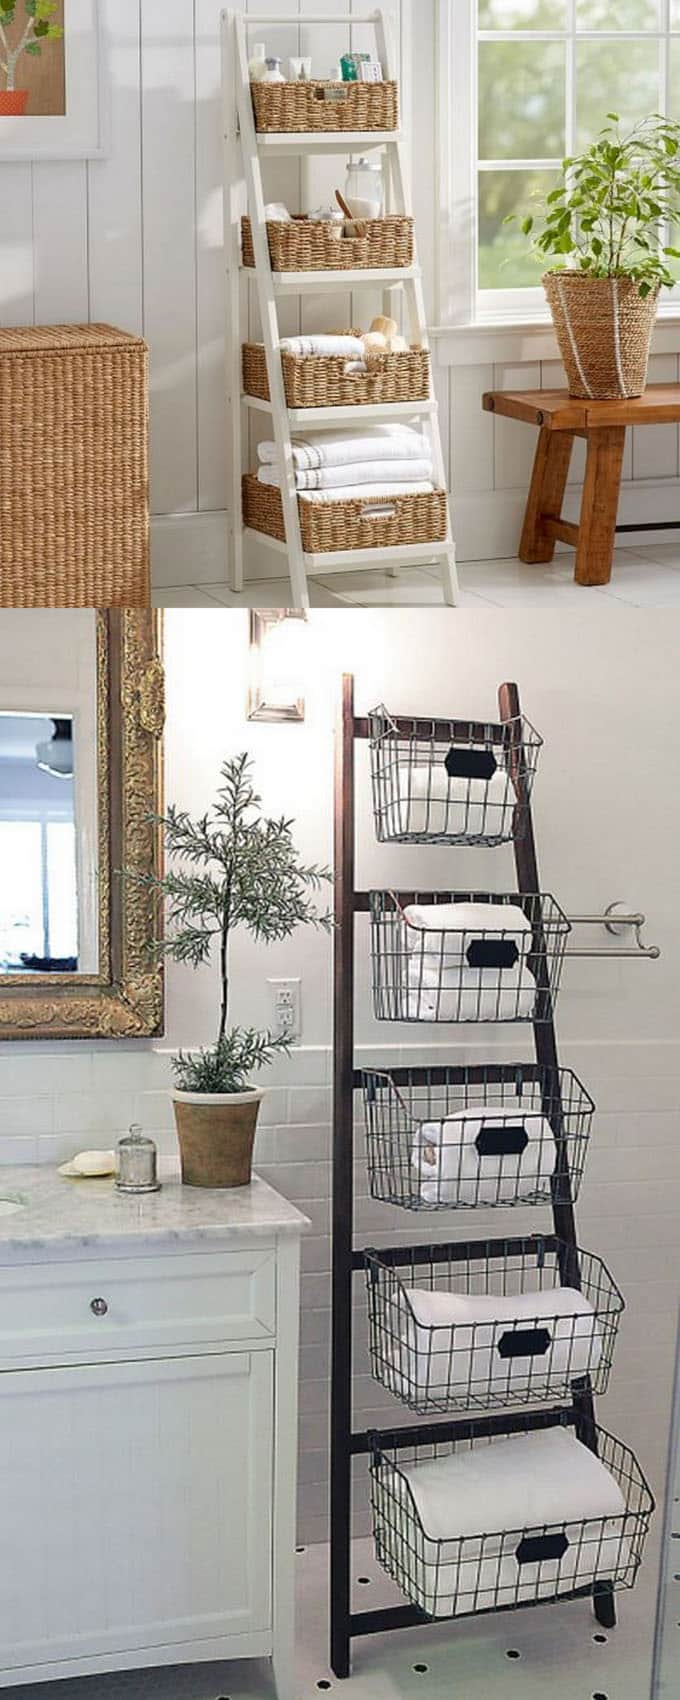 storage wire and wicker baskets on ladders as decorative storage in modern farmhouse style home